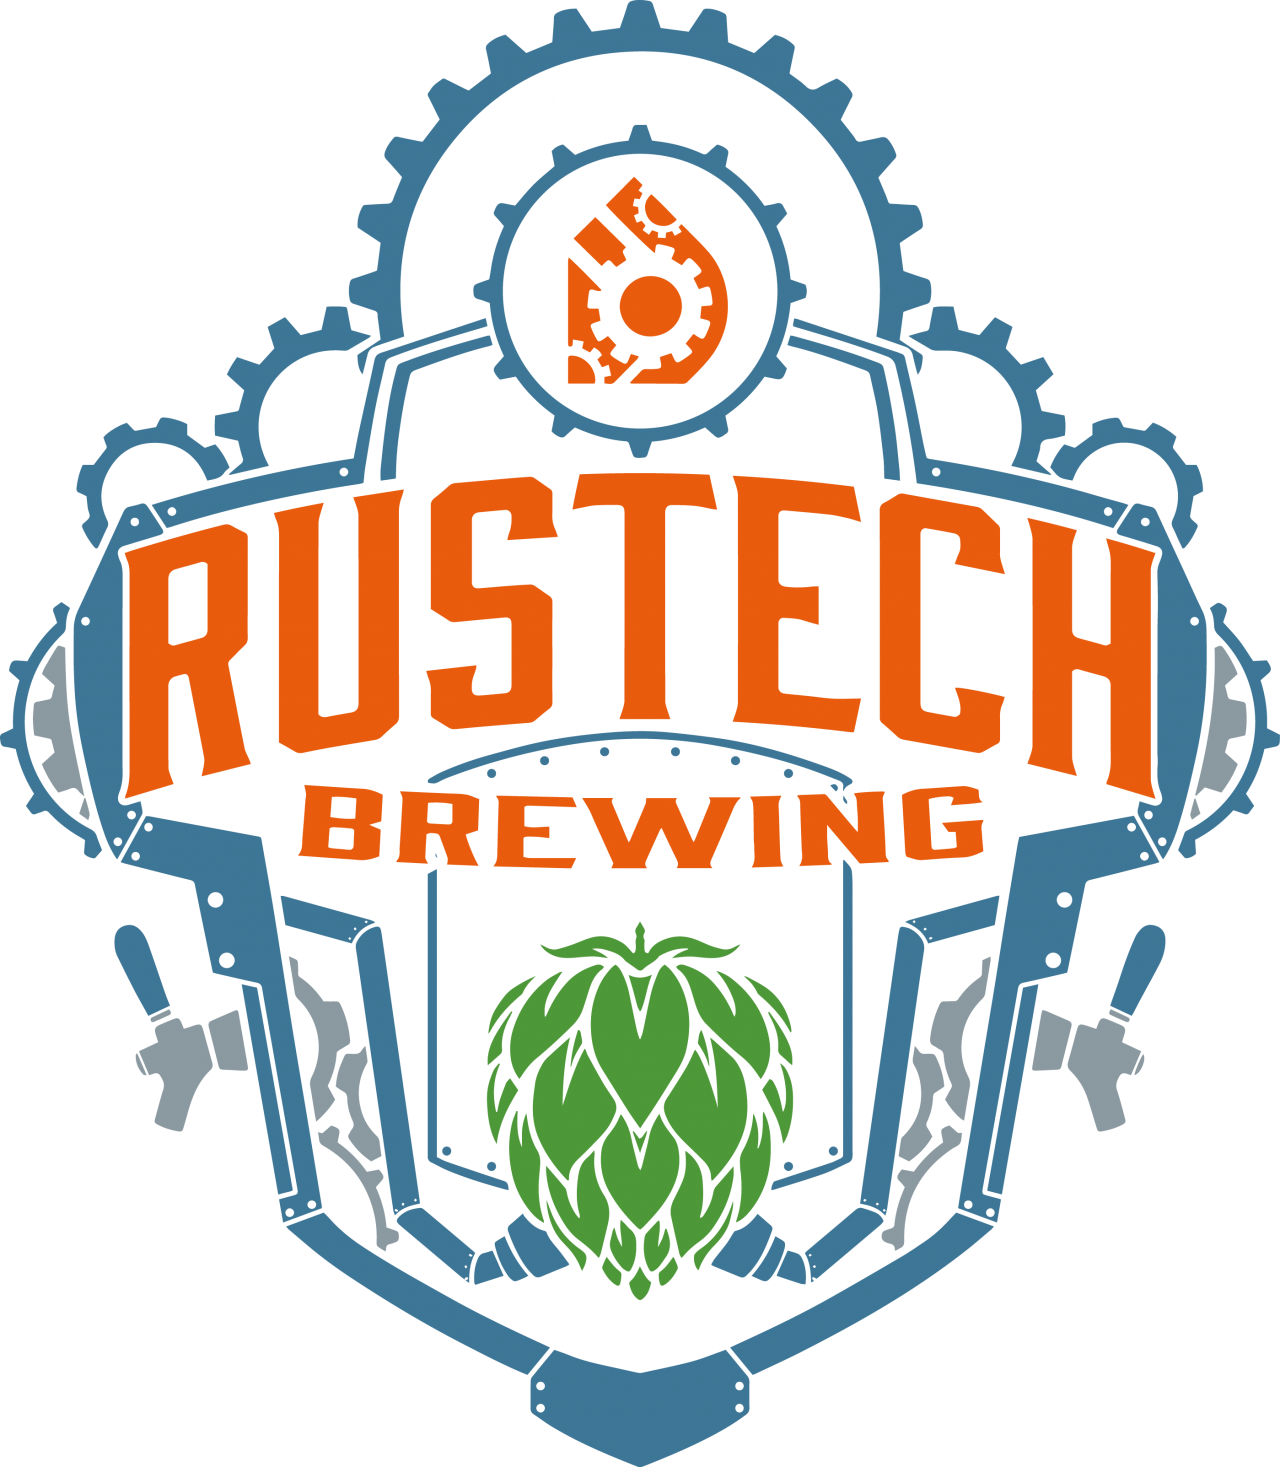 https://www.mncraftbrew.org/wp-content/uploads/2018/07/rustech-new-logo-1280x1467.png